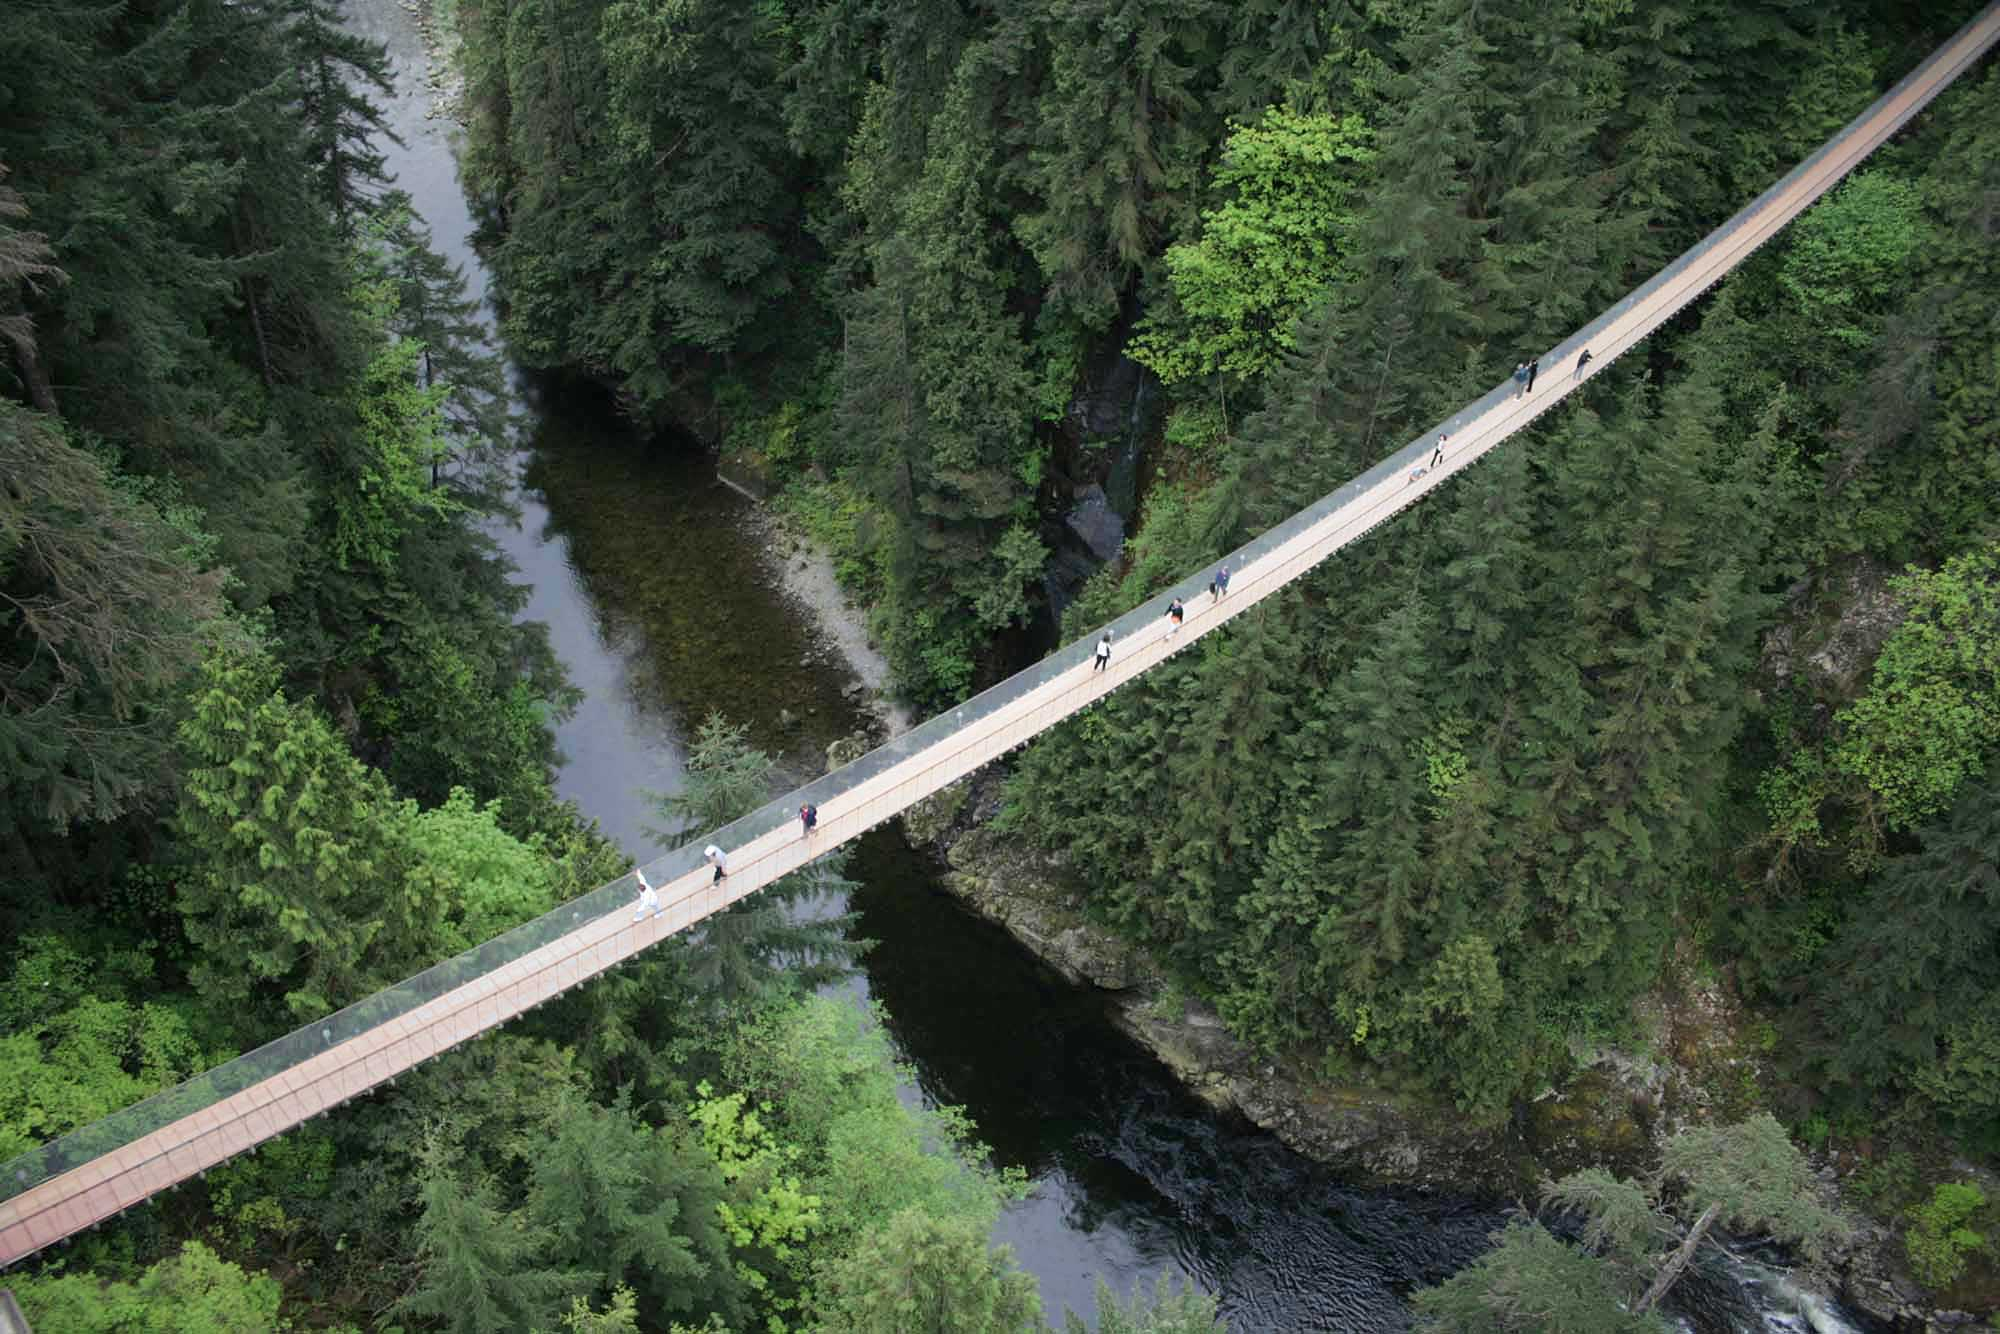 Visitors walk across the Capilano Suspension Bridge above the Capilano River and surrounding rainforest in Vancouver, BC.